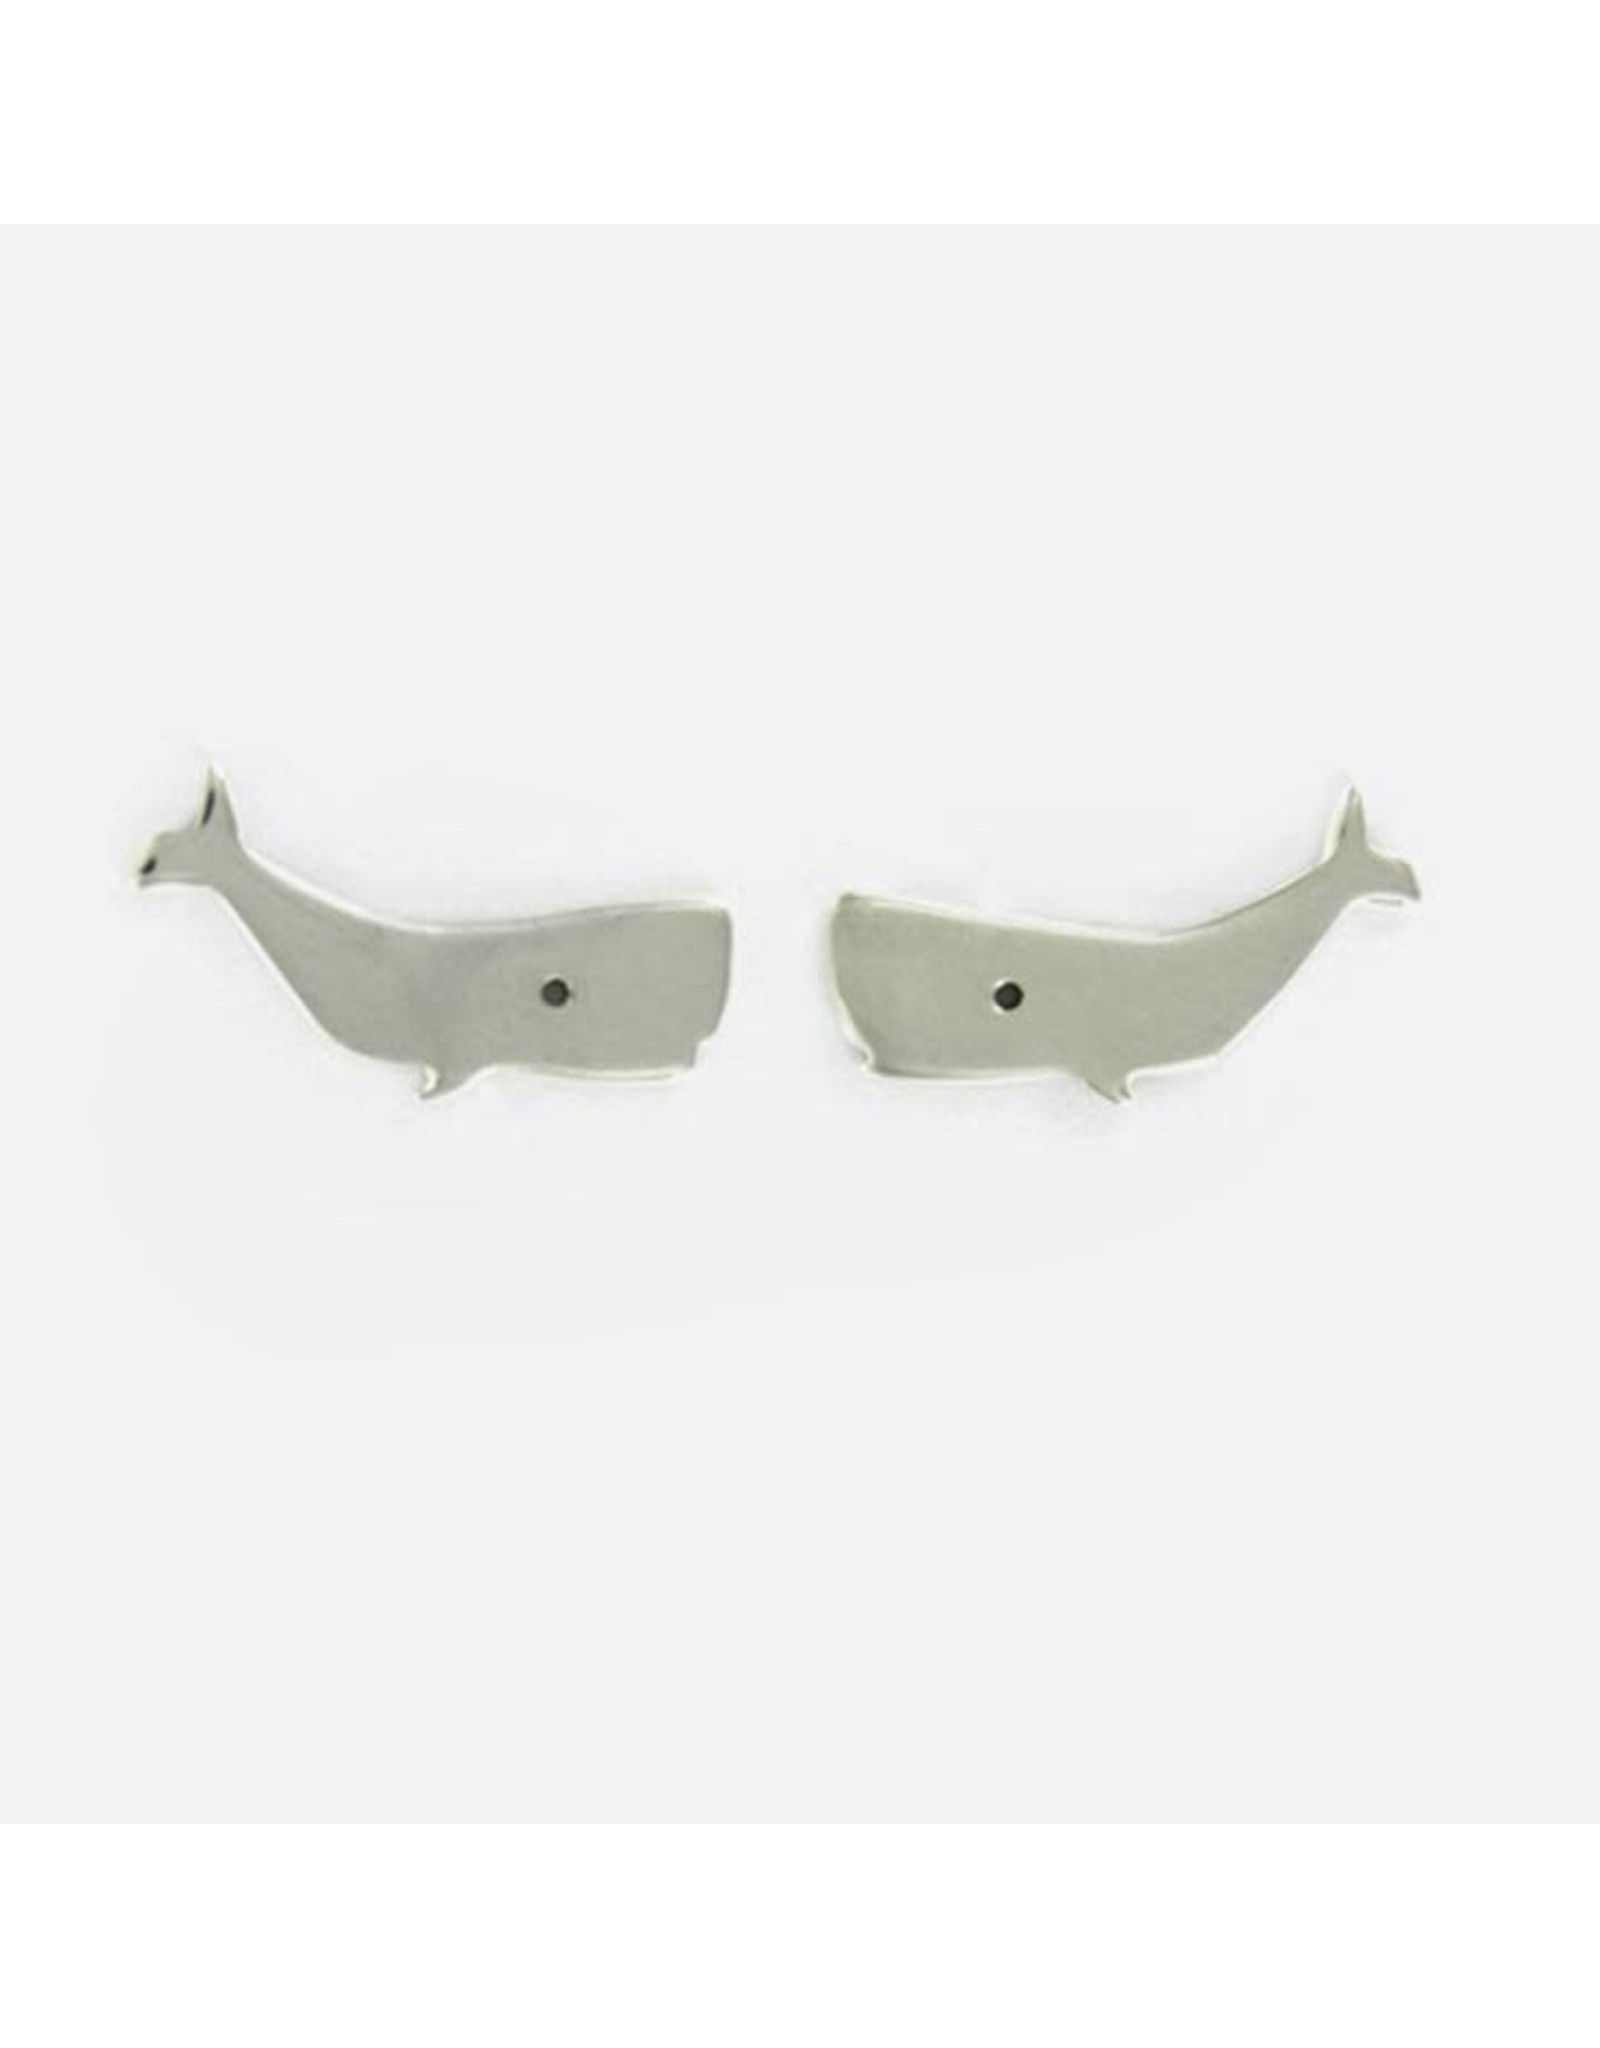 Sterling Silver Whale Post Earrings, Mexico